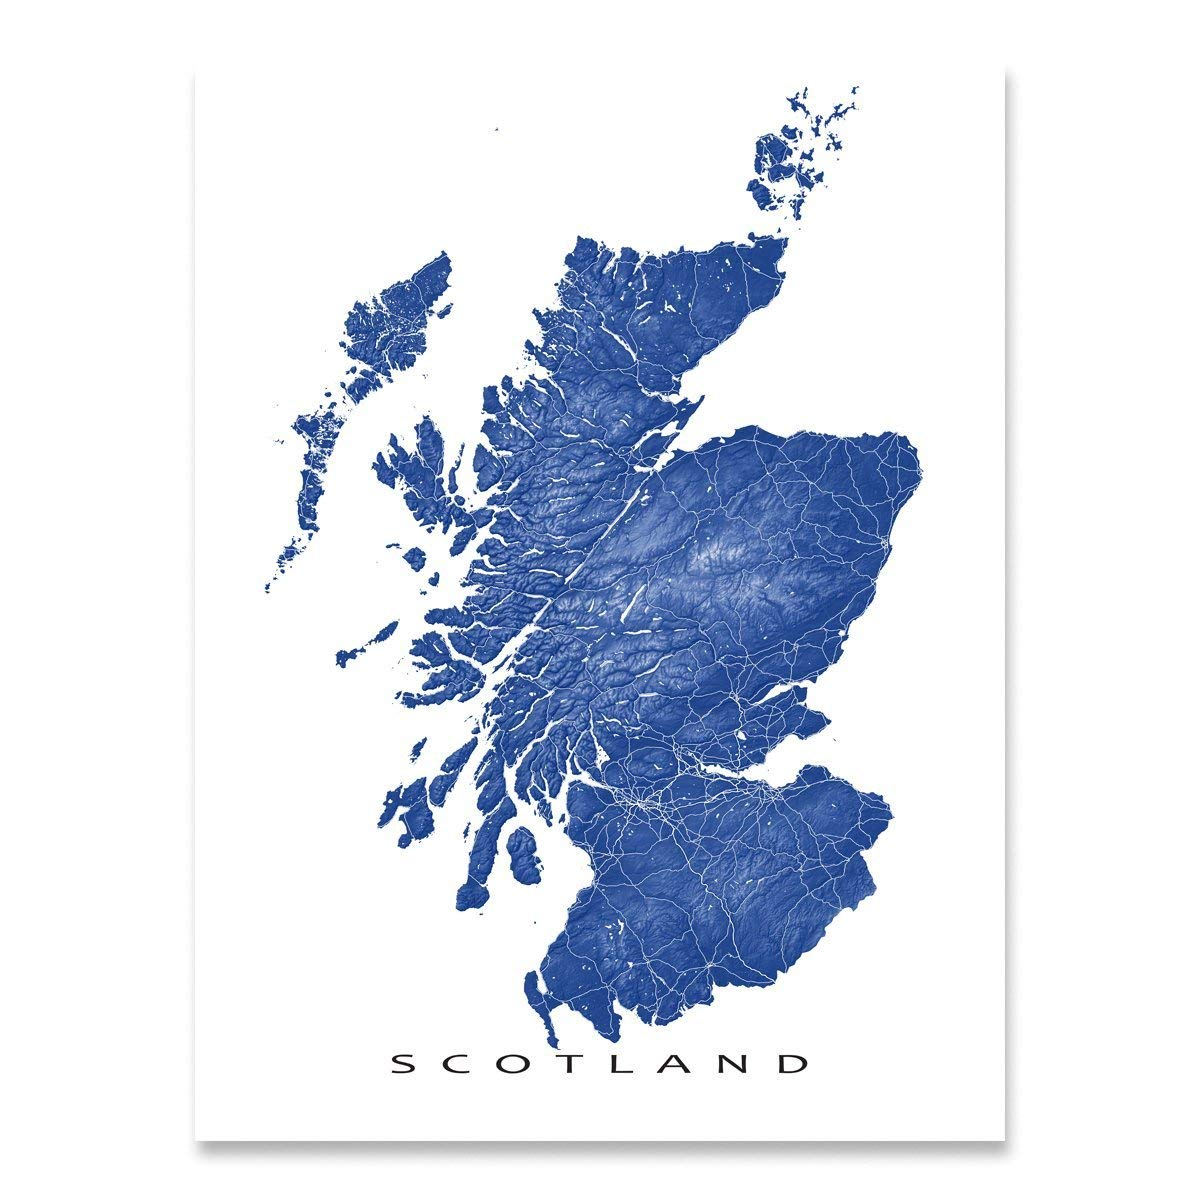 Amazon.com: Scotland Map Print, UK, United Kingdom ... on mexico map, uk map, germany map, italy map, republic of ireland, northern ireland, scottish people, portugal map, british isles map, europe map, great britain, orkney islands map, edinburgh castle, isle of wight map, flag of scotland, britain map, united kingdom, england map, loch ness, poland map, wales map, luxembourg map, basque country map, scottish highlands, greece map, france map, isle of man, ireland map, william wallace, united kingdom map, australia map,